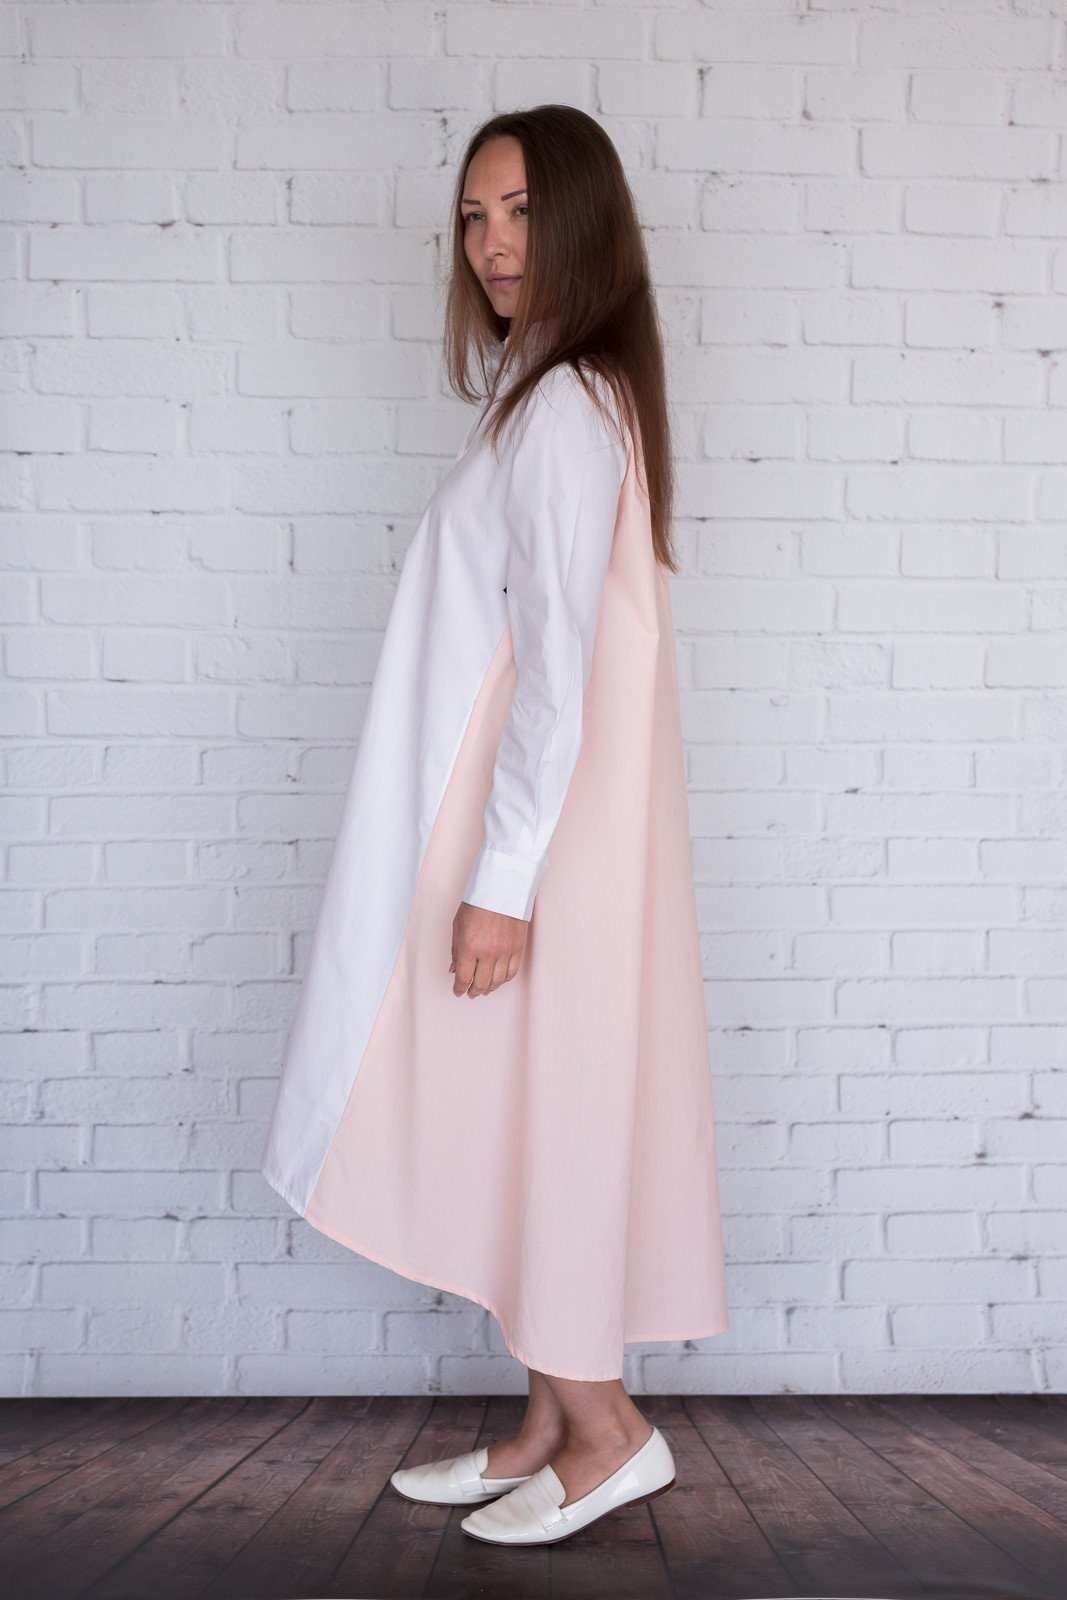 Maaya Medium - White/Light Peach Poplin - PROJECT 6, modest fashion